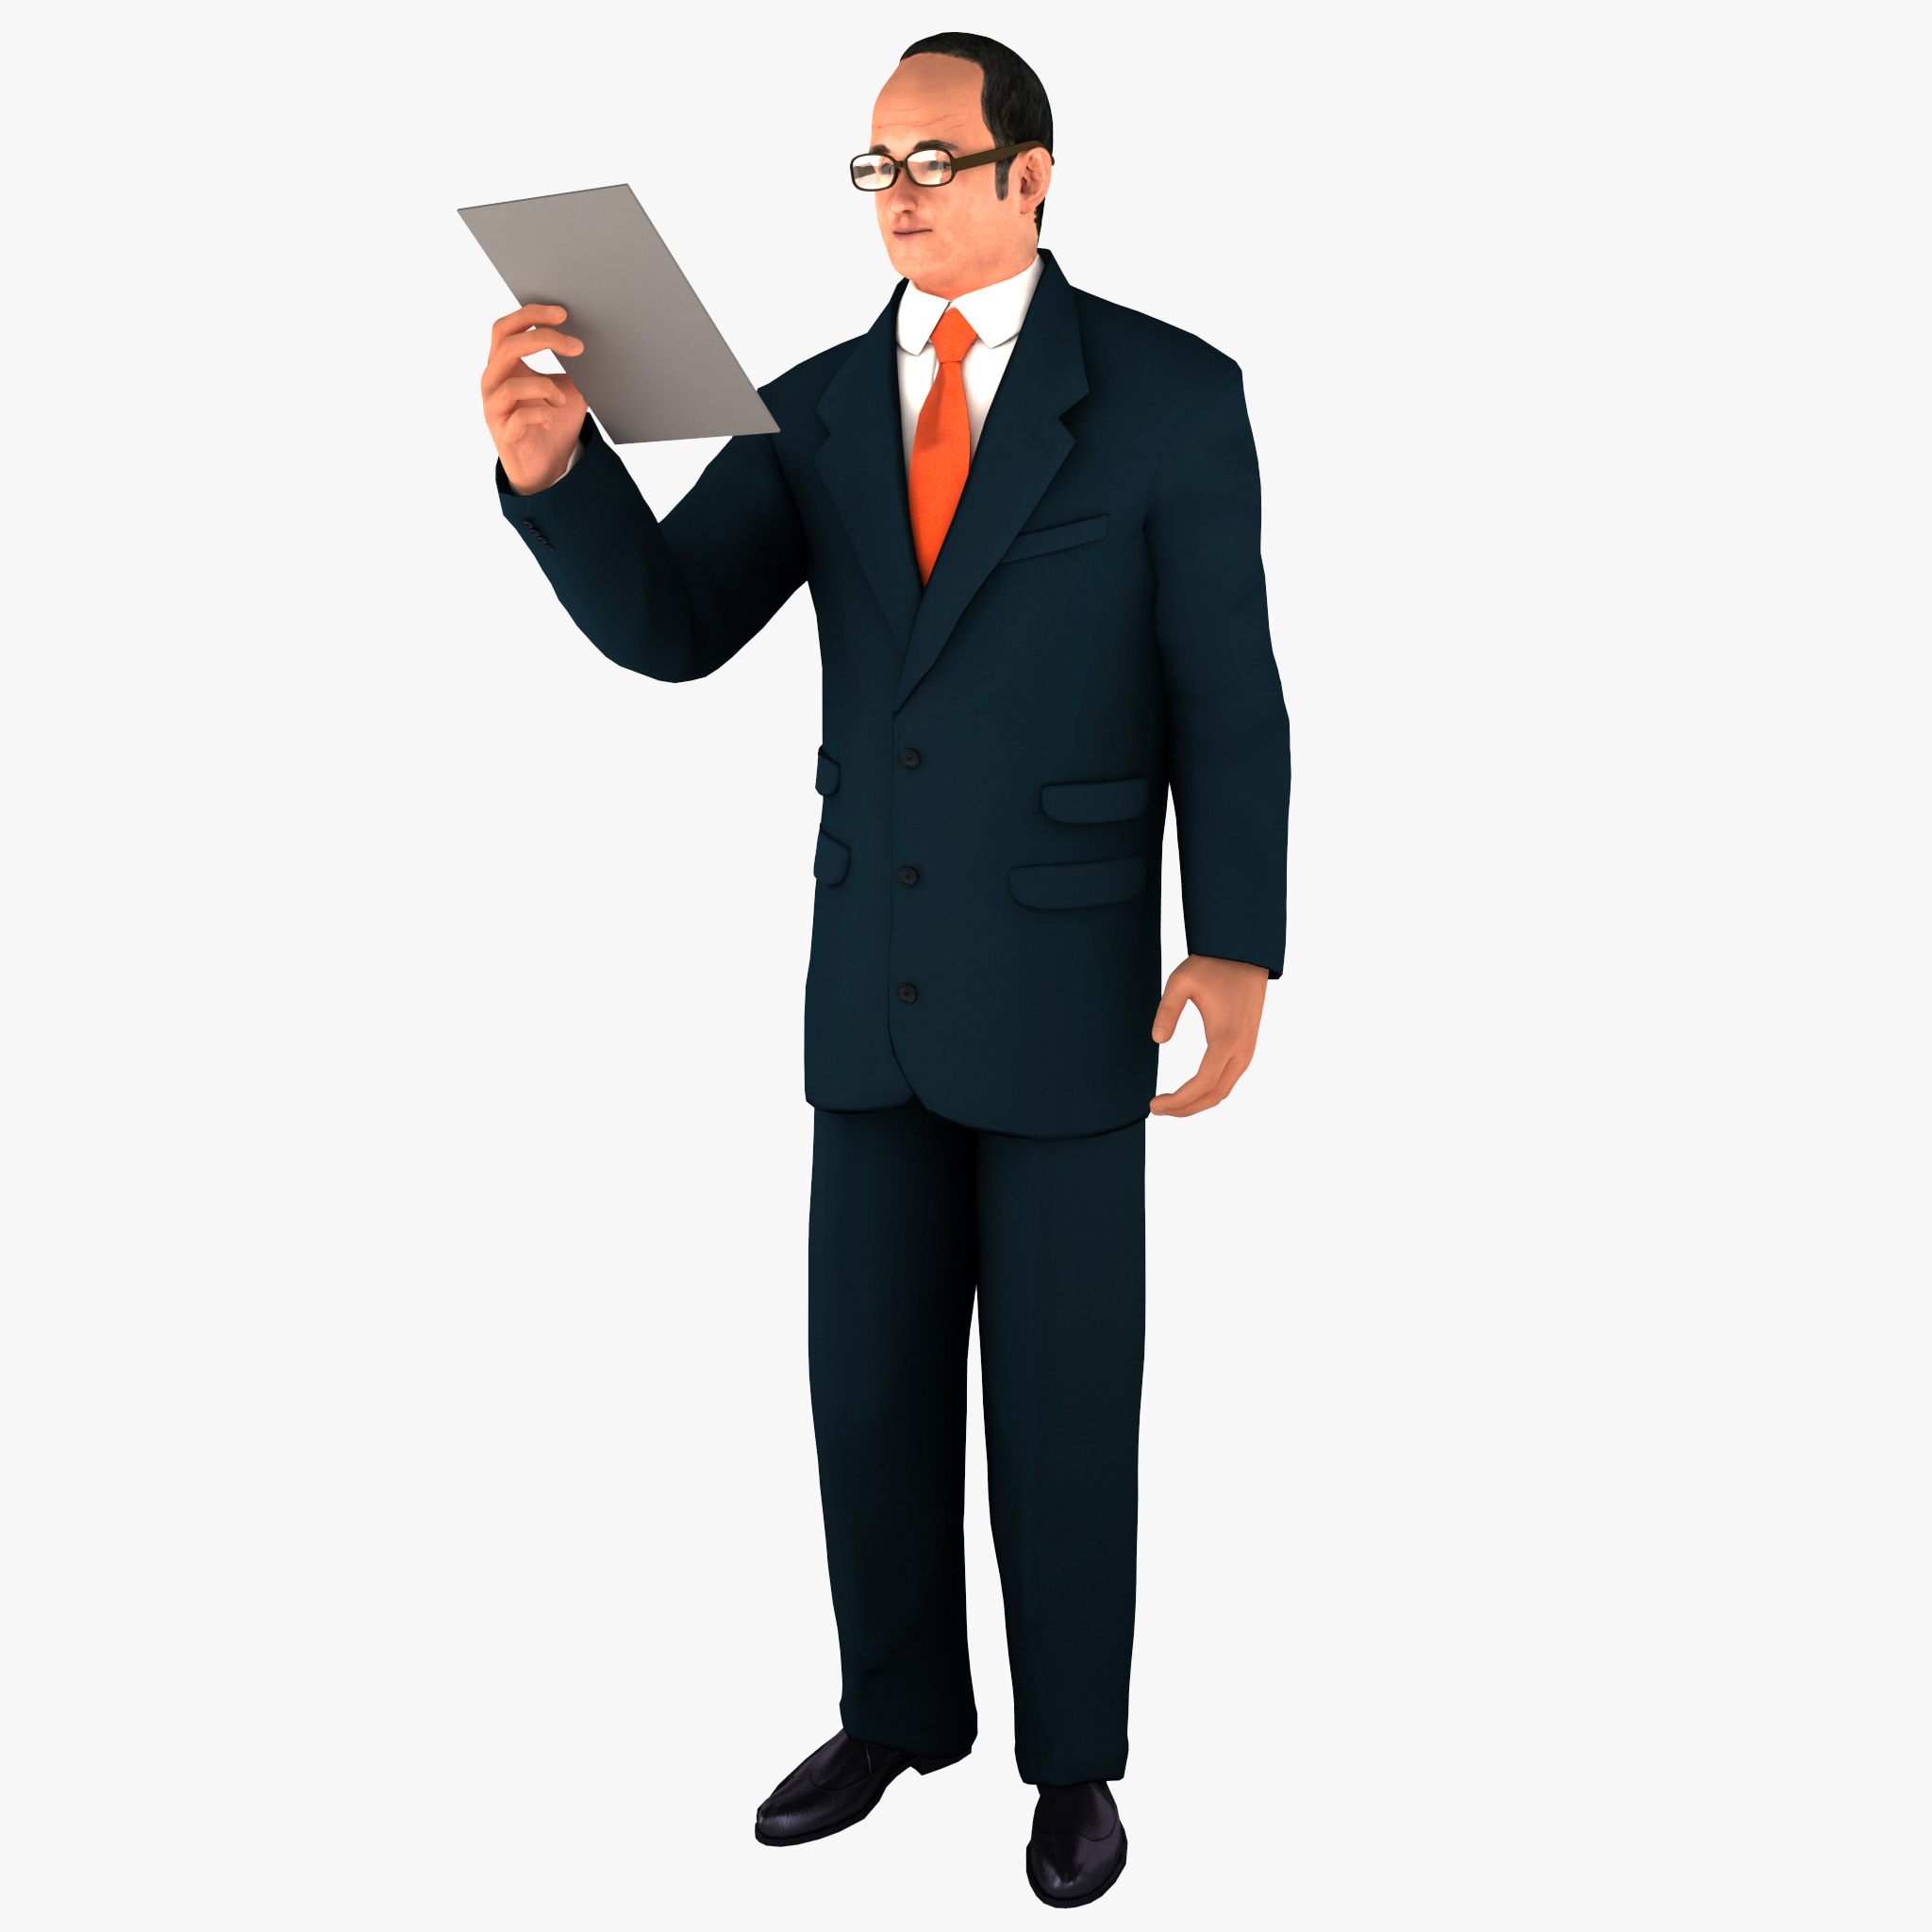 Businessman 2 Pose 3_1.jpg